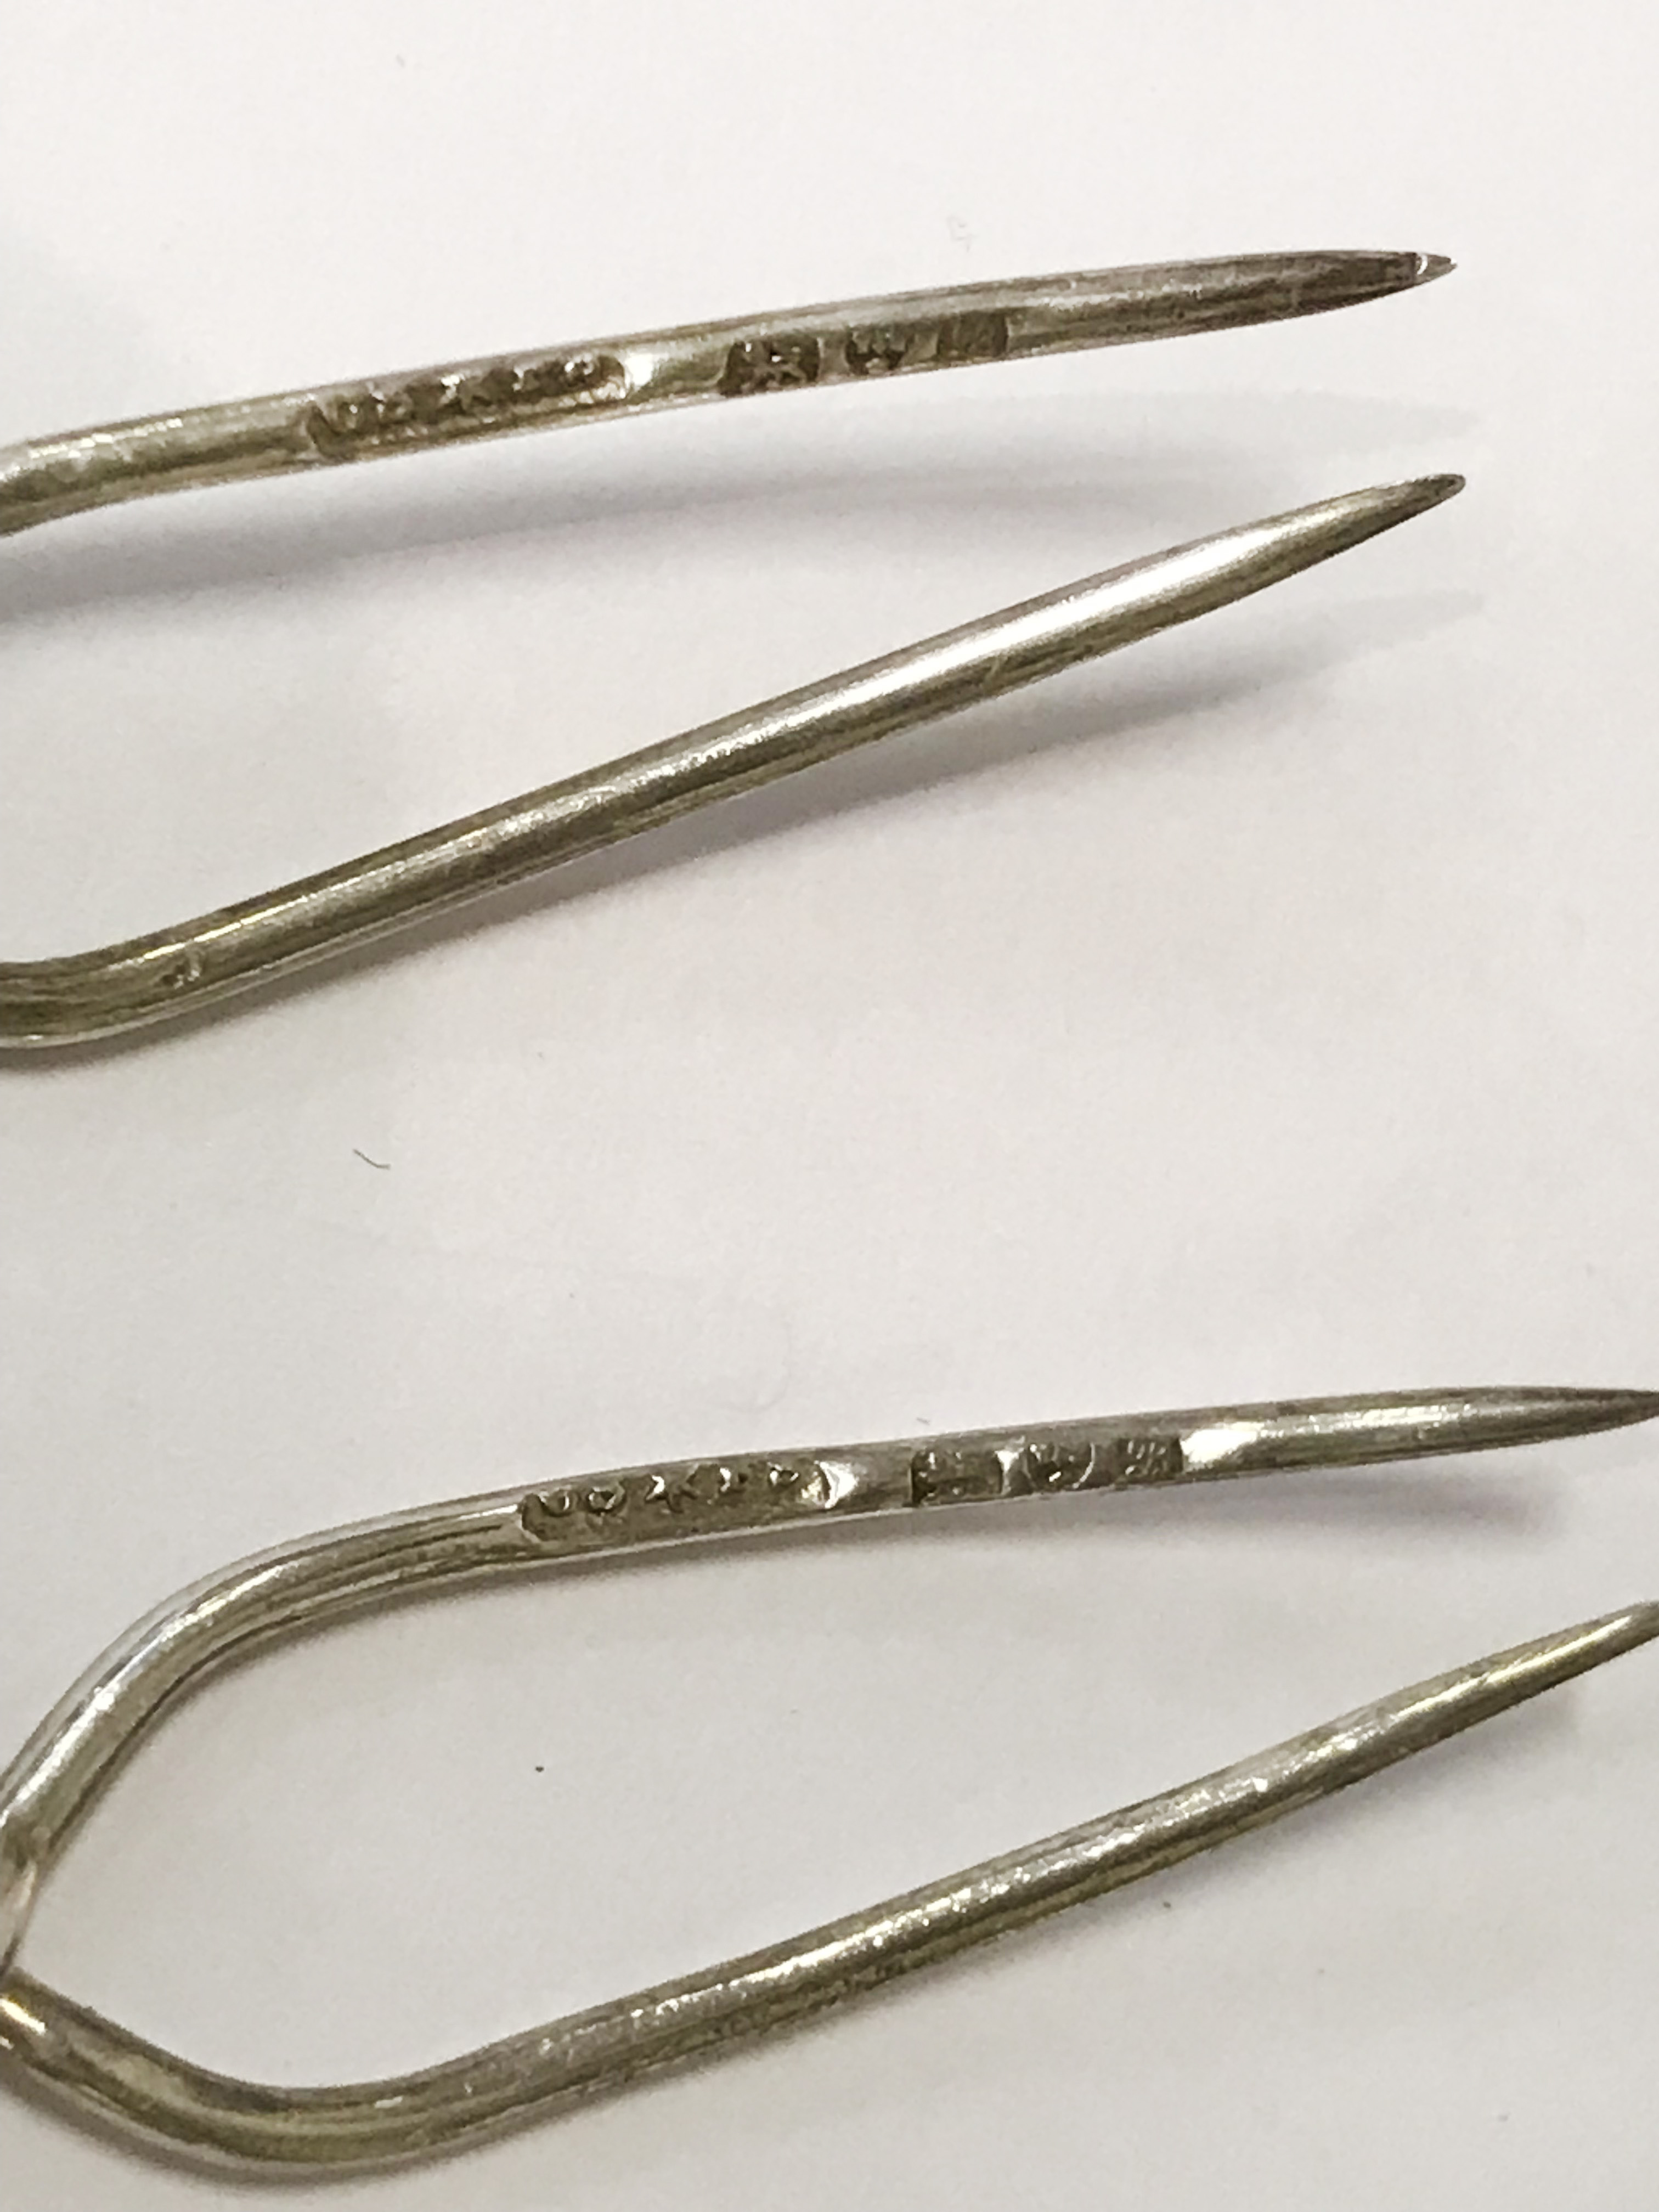 SIX HM SILVER OLIVE STICKS AND OTHER ITEMS - Image 2 of 3